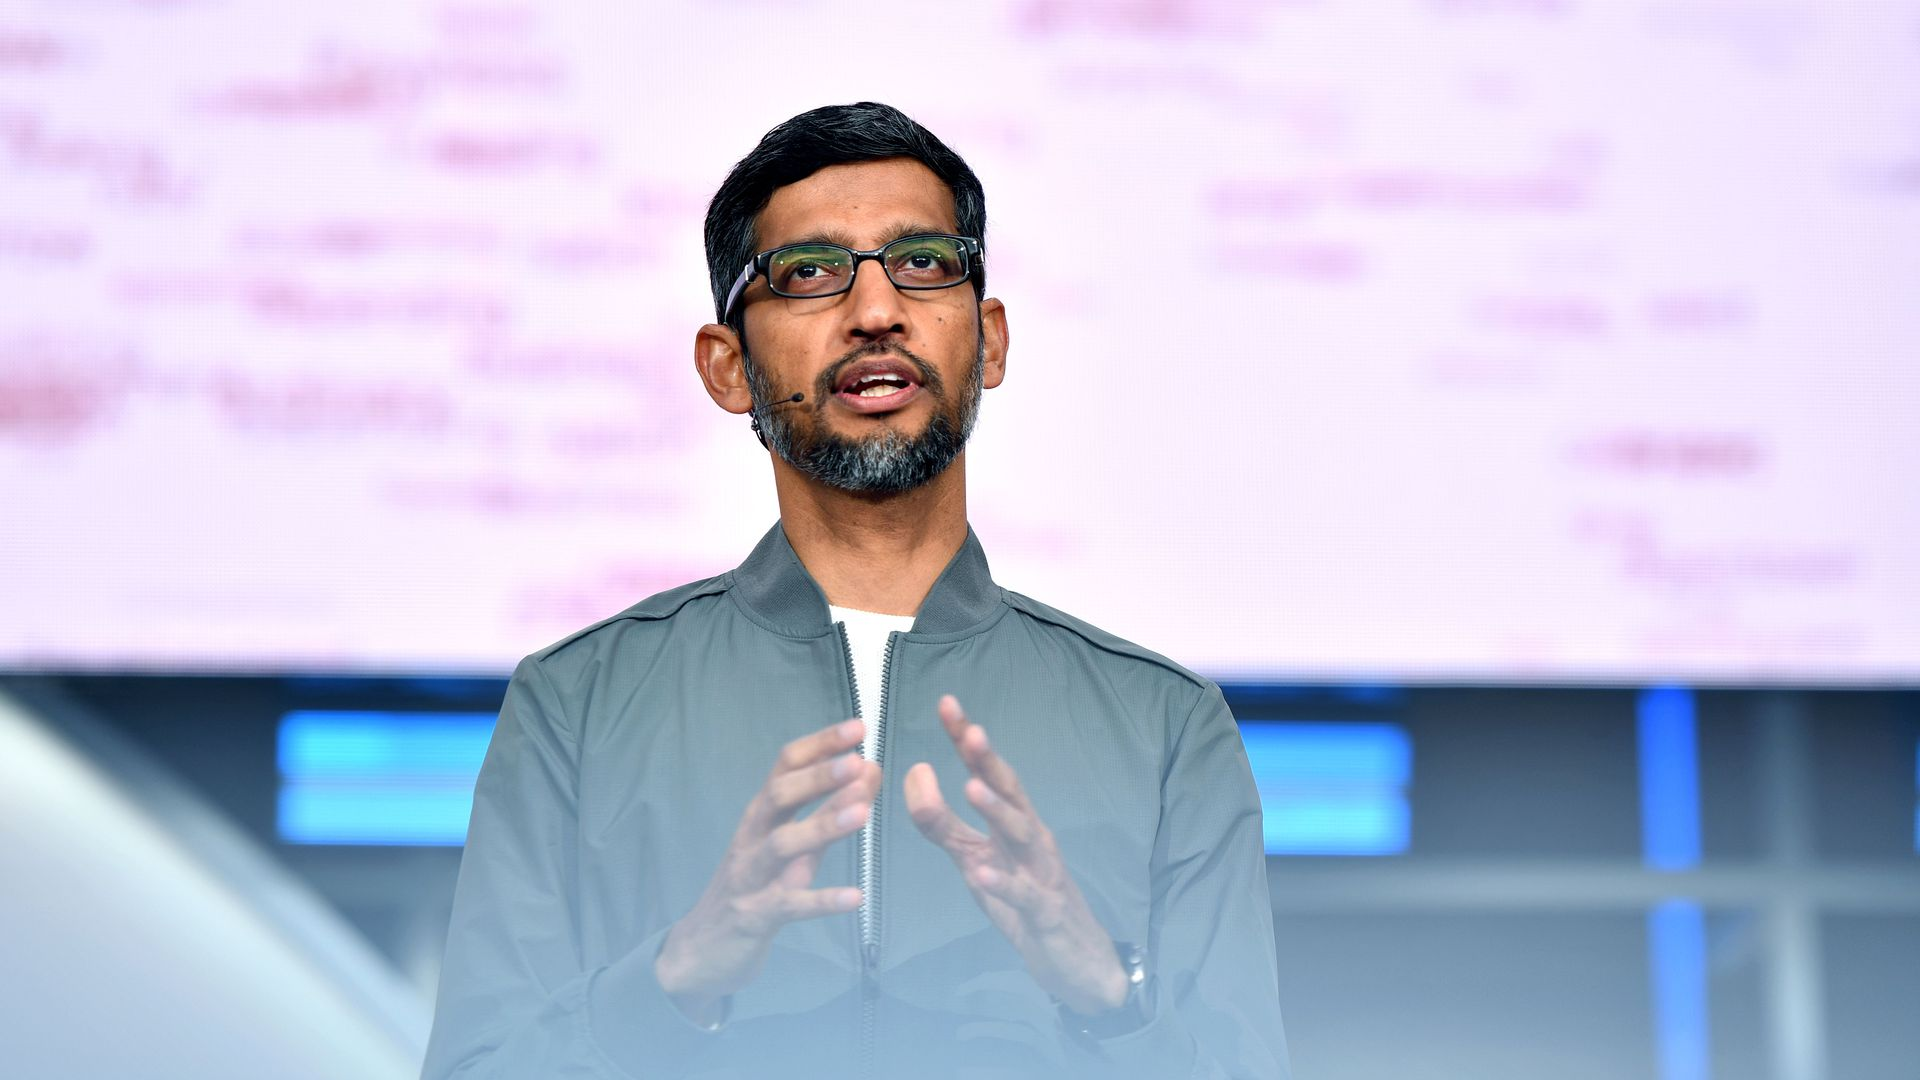 In this image, Sundar Pichai stands on stage and speaks to an audience while wearing a microphone and glasses